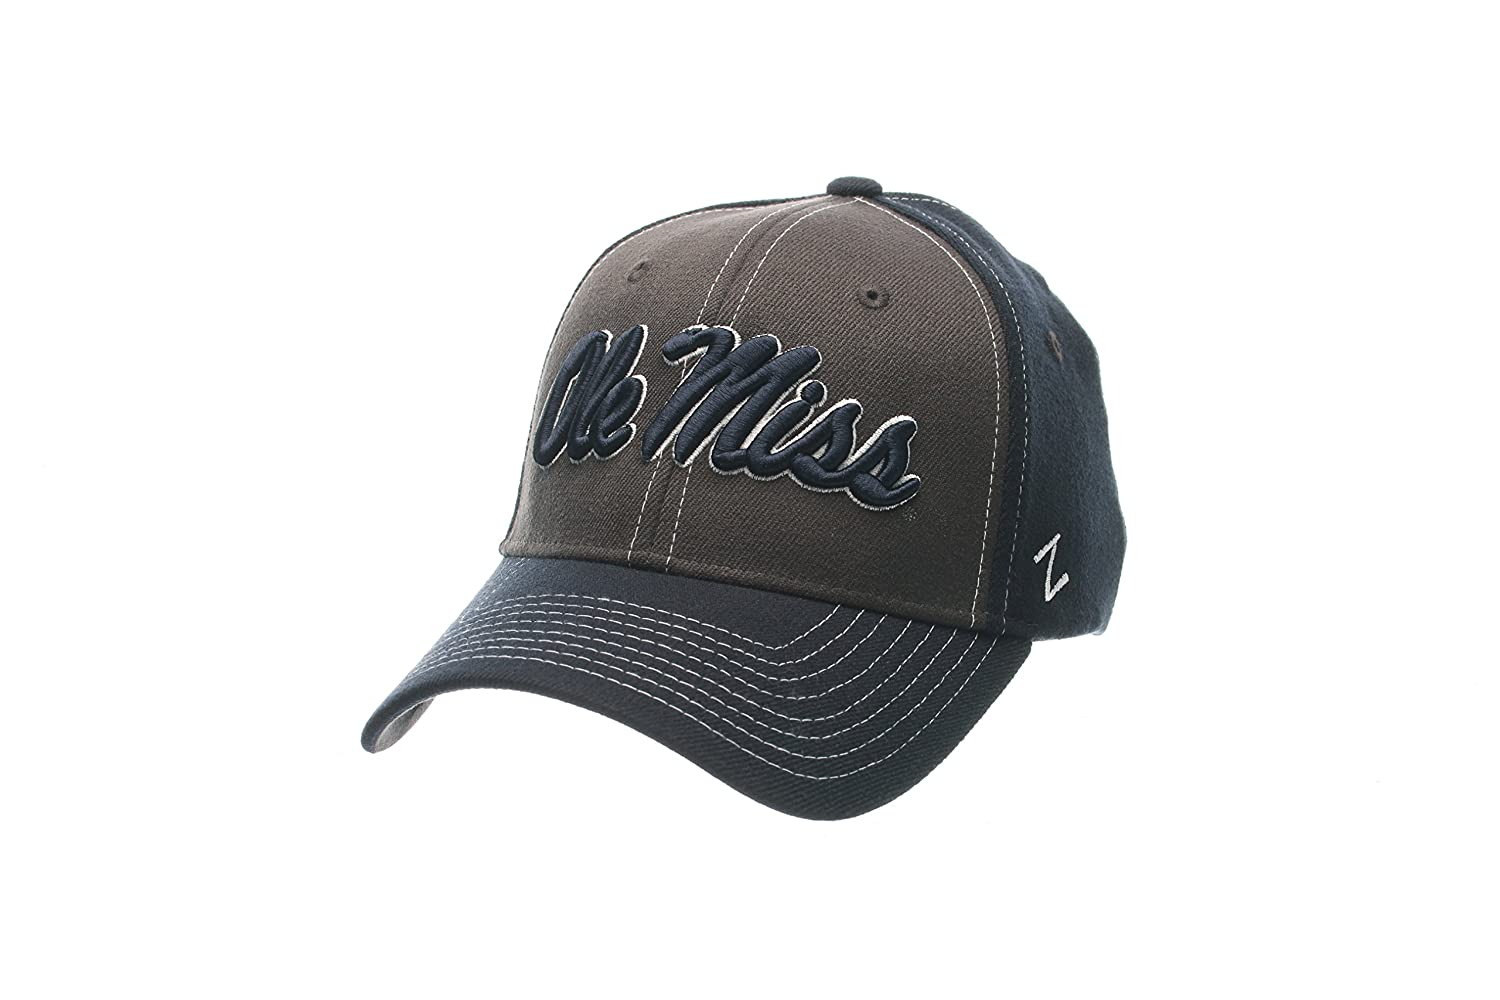 17b11c76d75057 Amazon.com : NCAA Penn State Nittany Lions Men's Powerhouse Z-Fit Cap,  X-Large, Charcoal/Navy : Sports & Outdoors